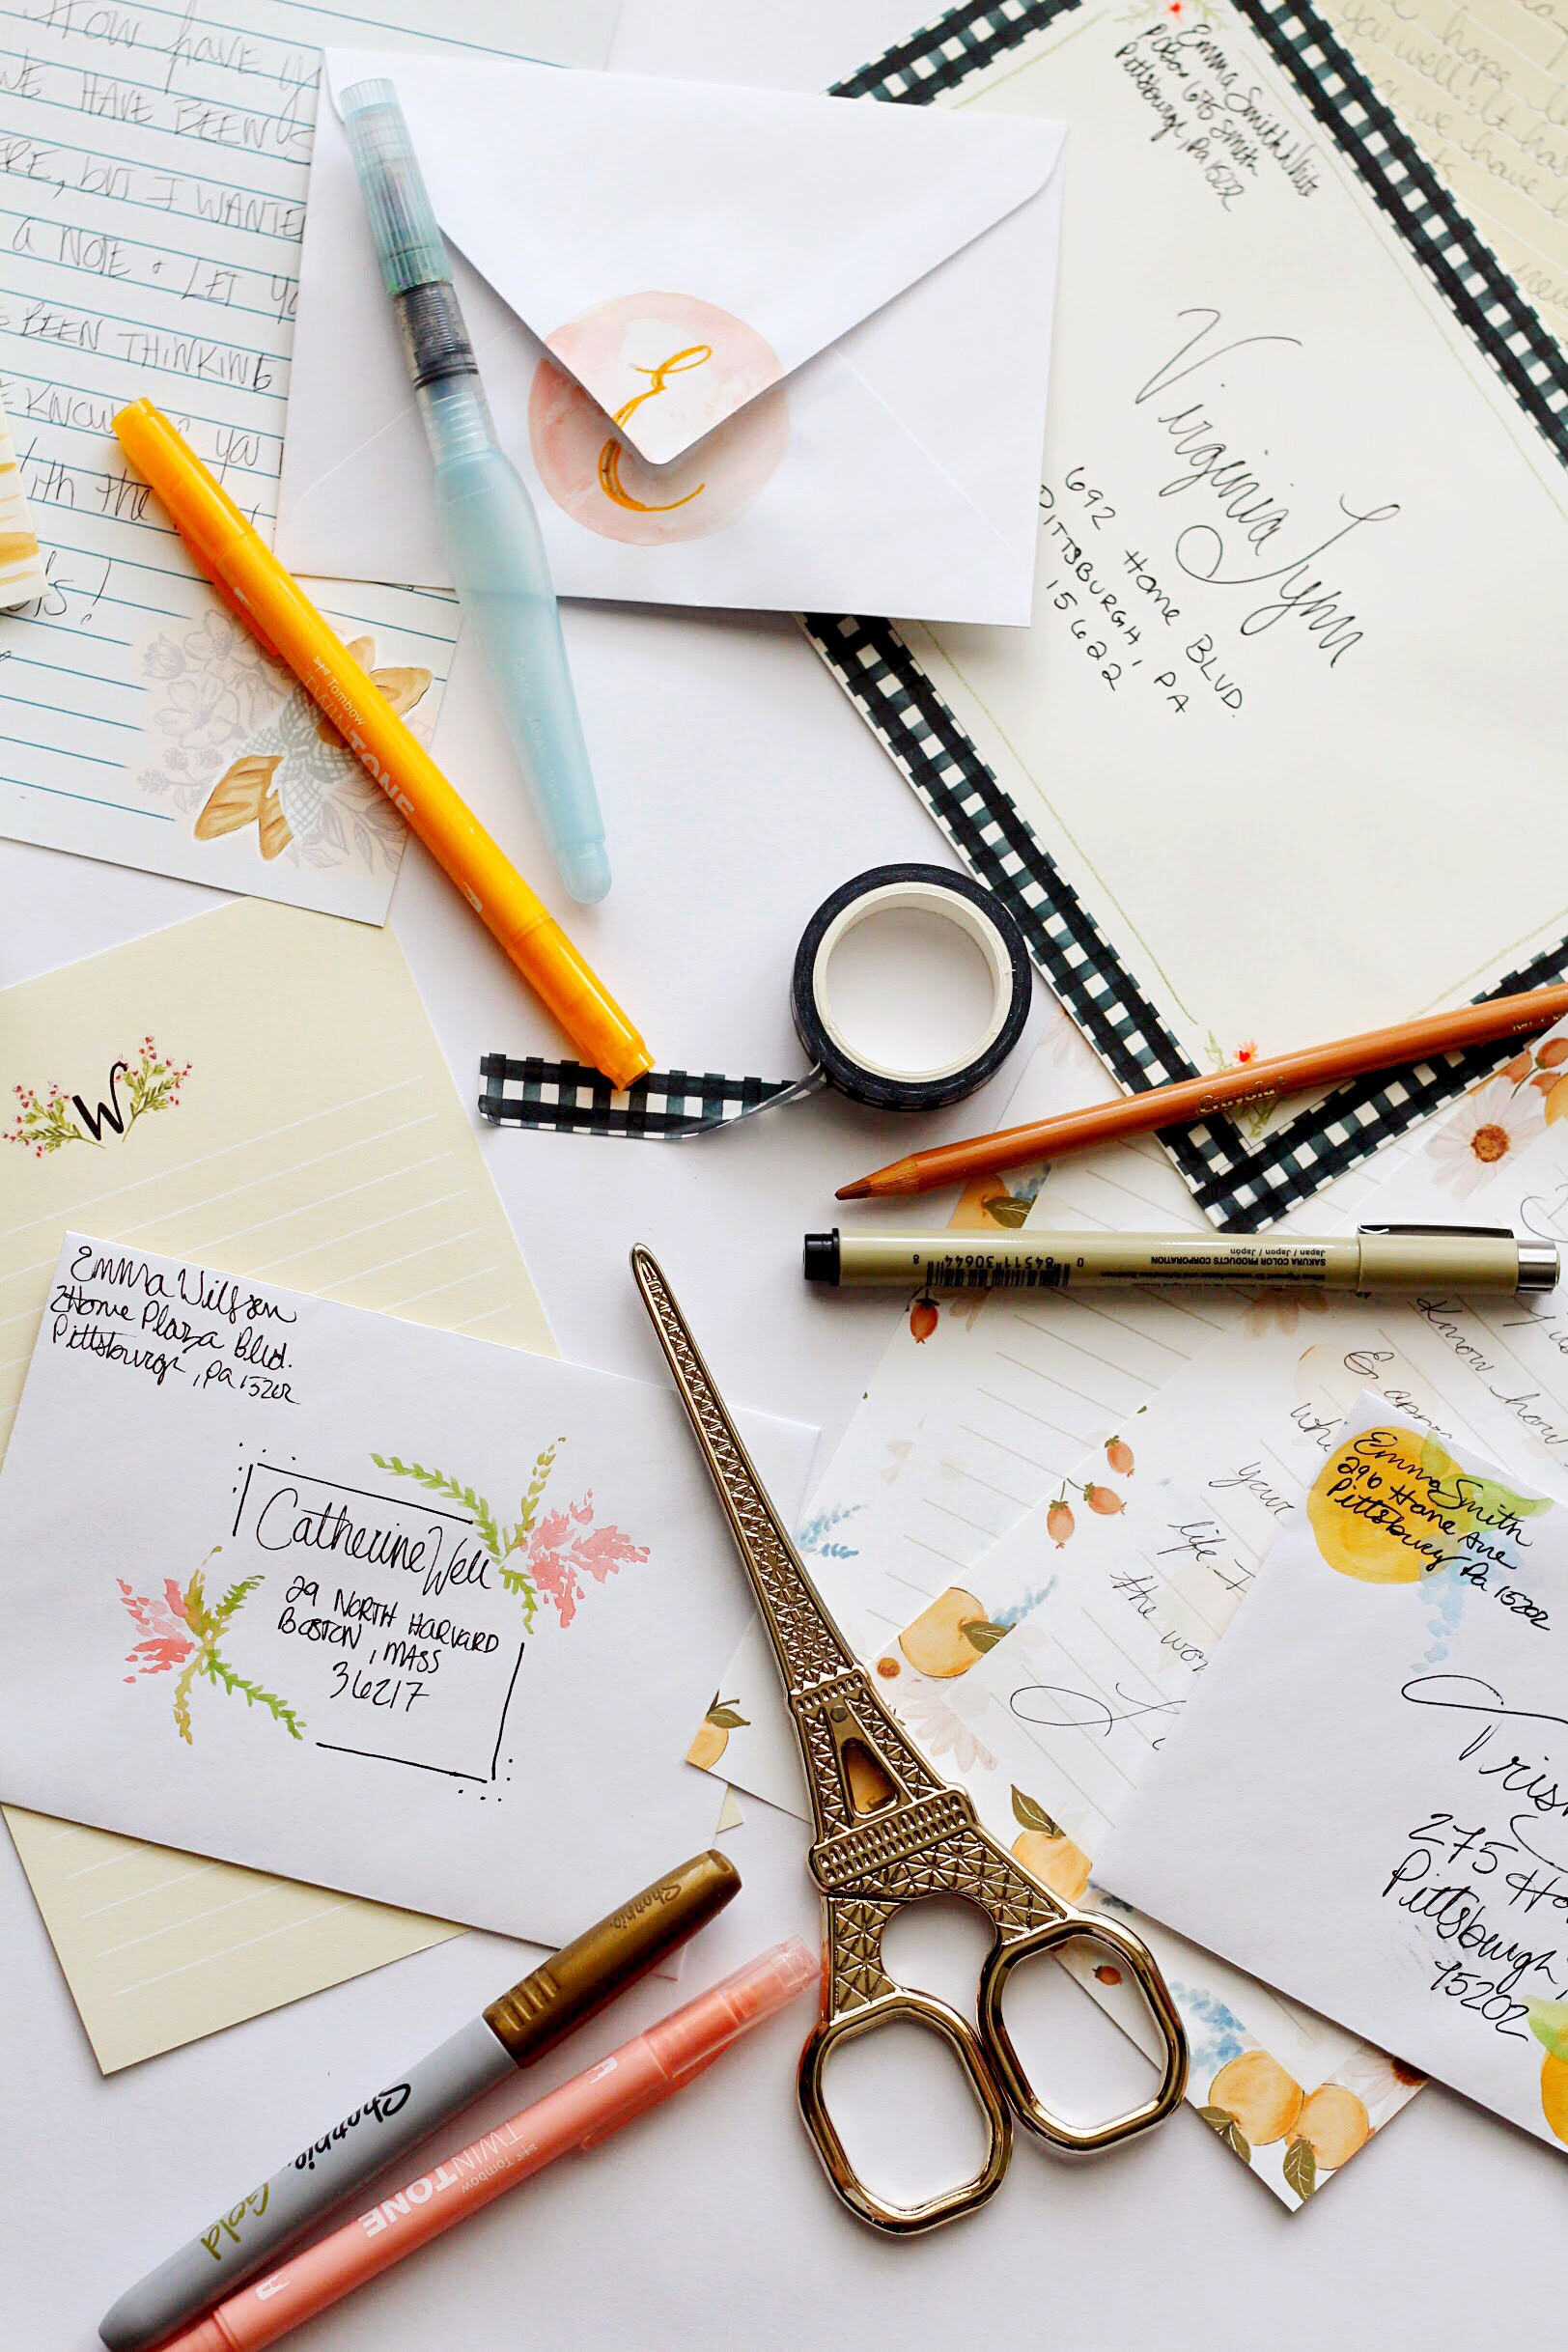 Diy Envelope Decorating inspired by our printable Stationery Sheets